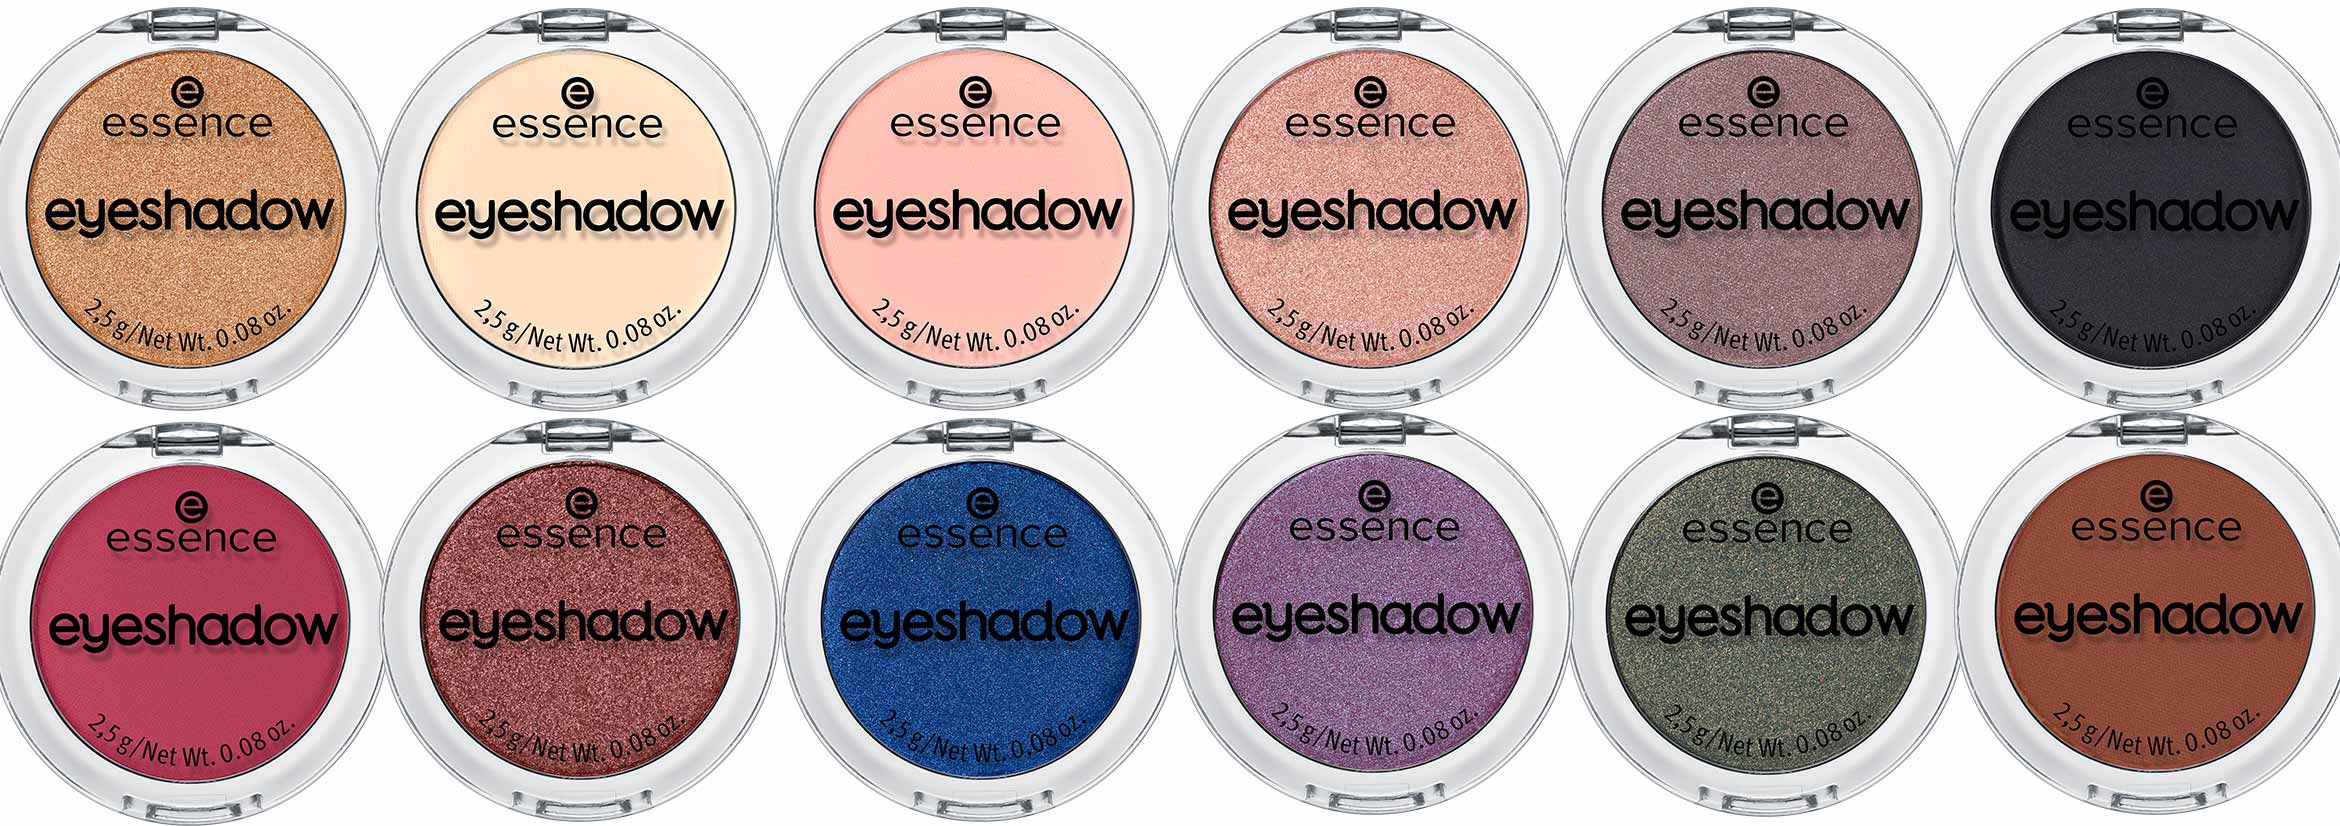 essence-it's-all-about-eyes-eyeshadow